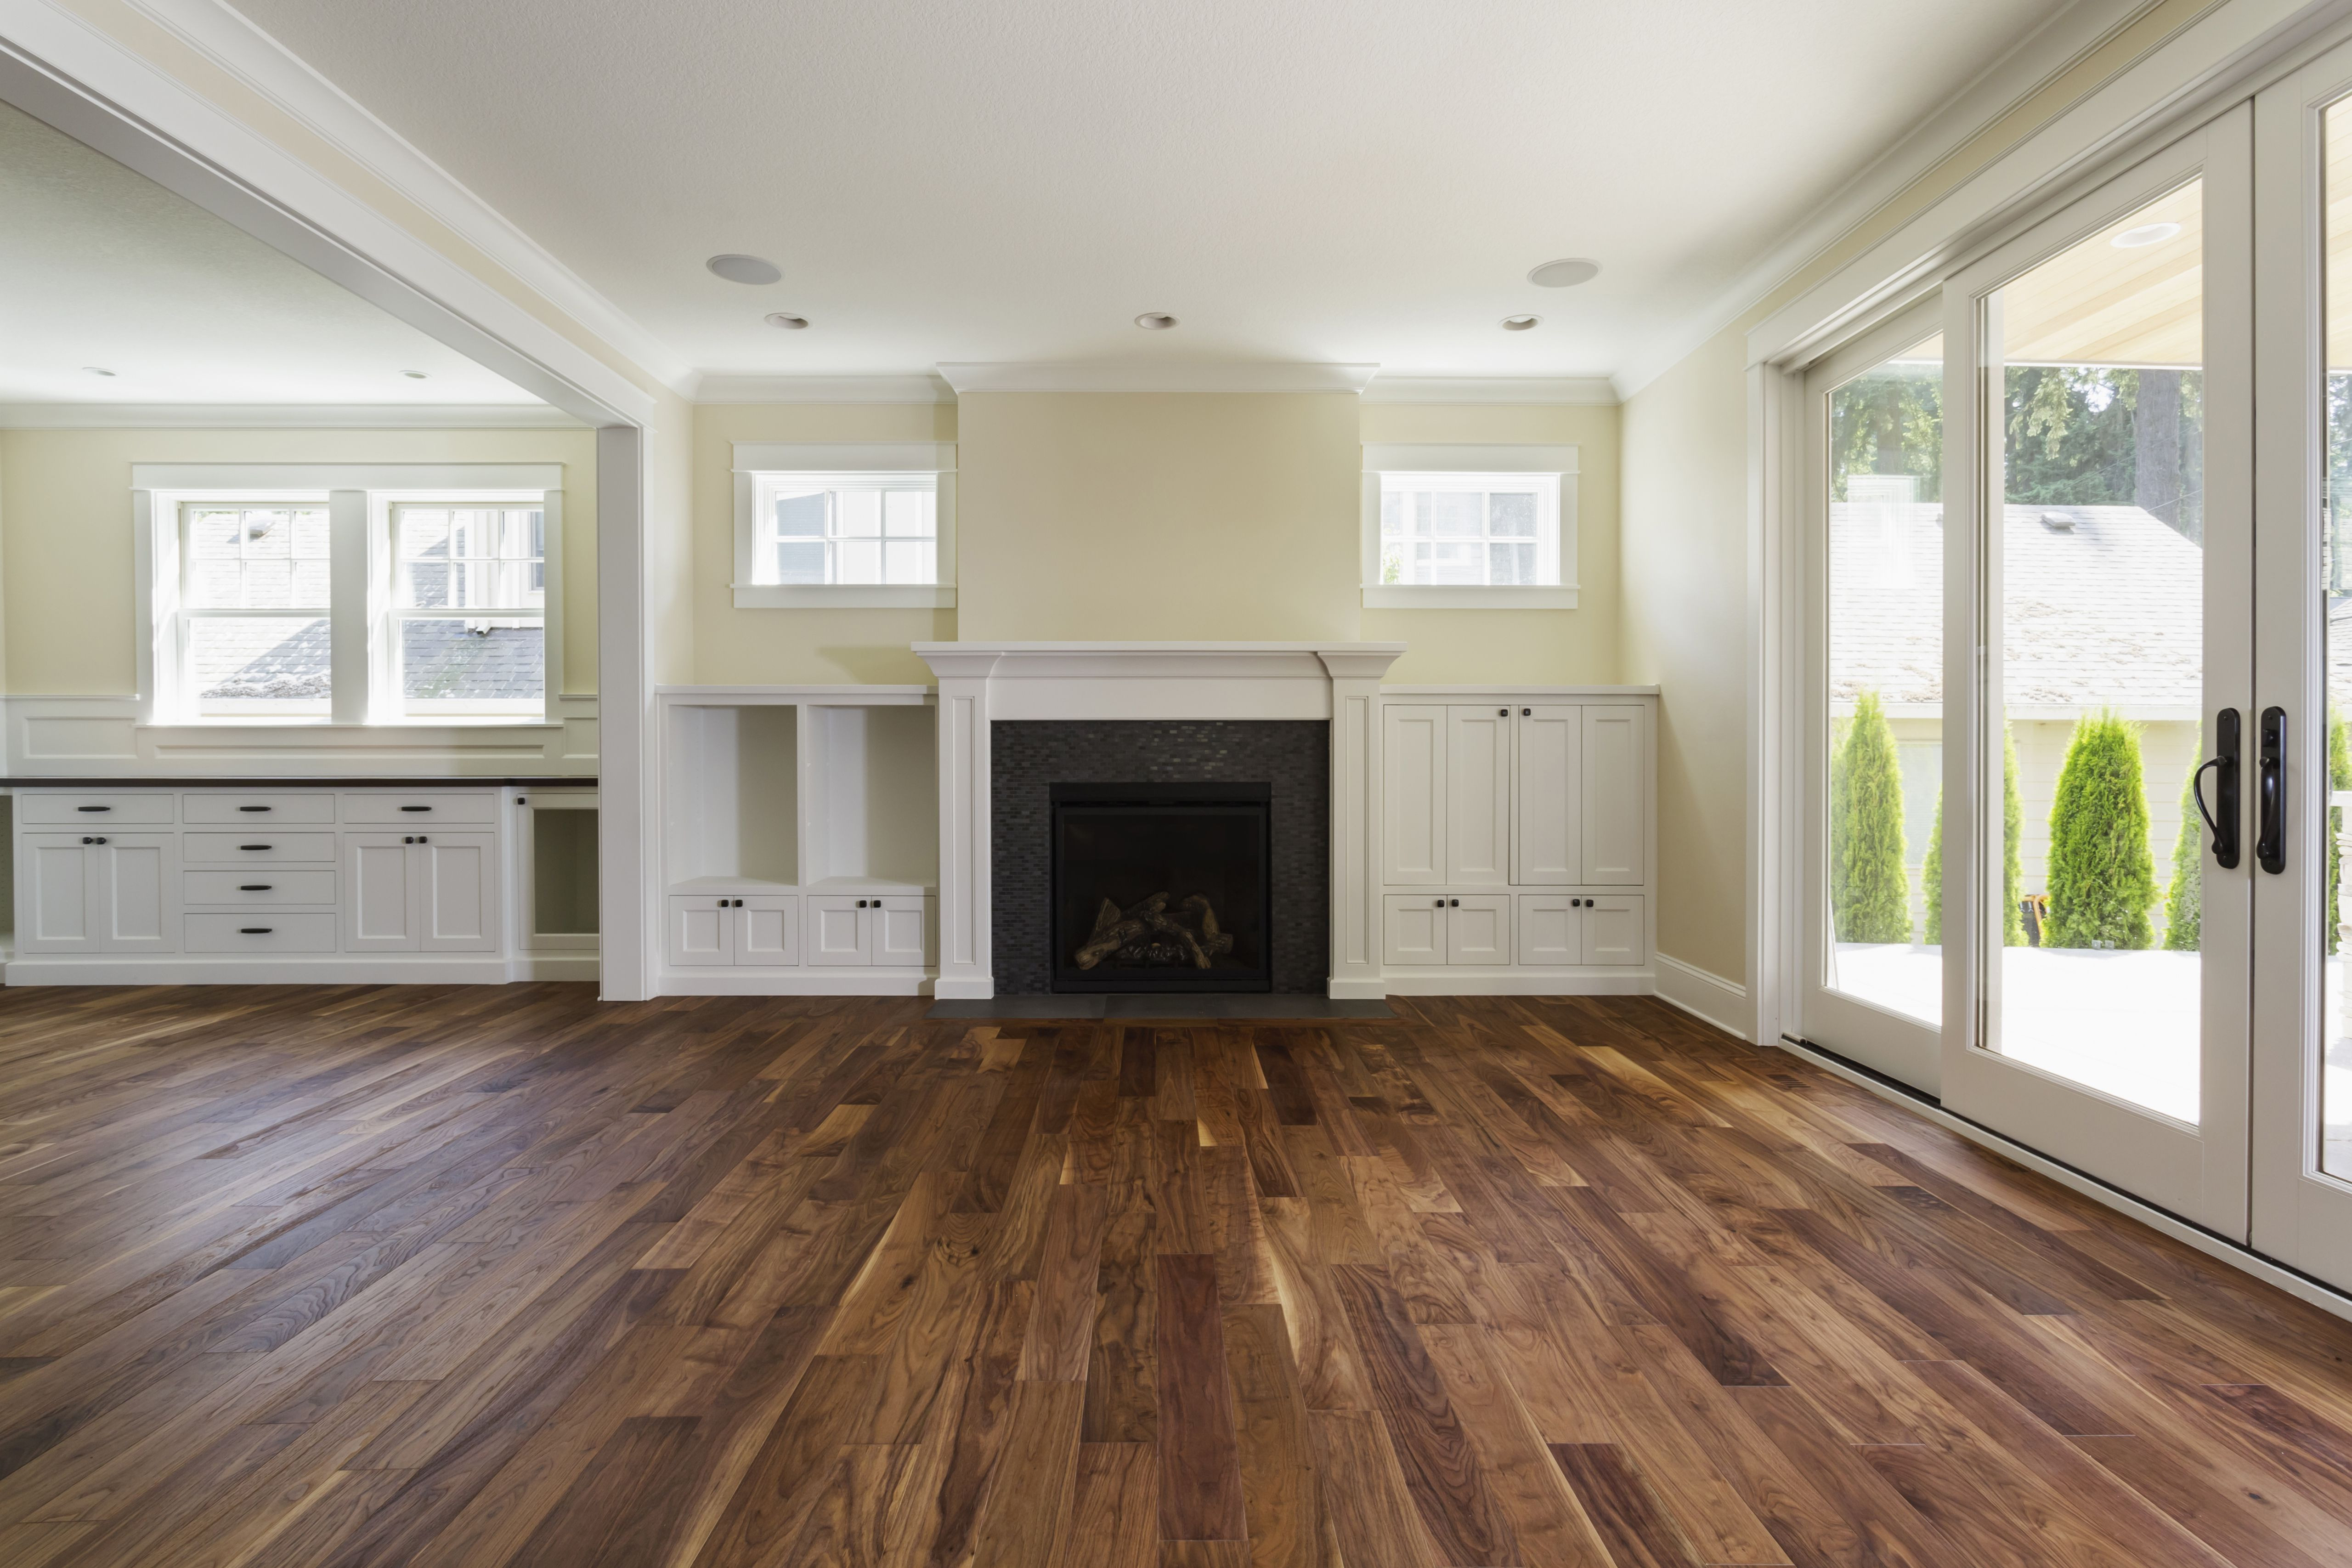 hardwood floor cleaning atlanta of the pros and cons of prefinished hardwood flooring intended for fireplace and built in shelves in living room 482143011 57bef8e33df78cc16e035397